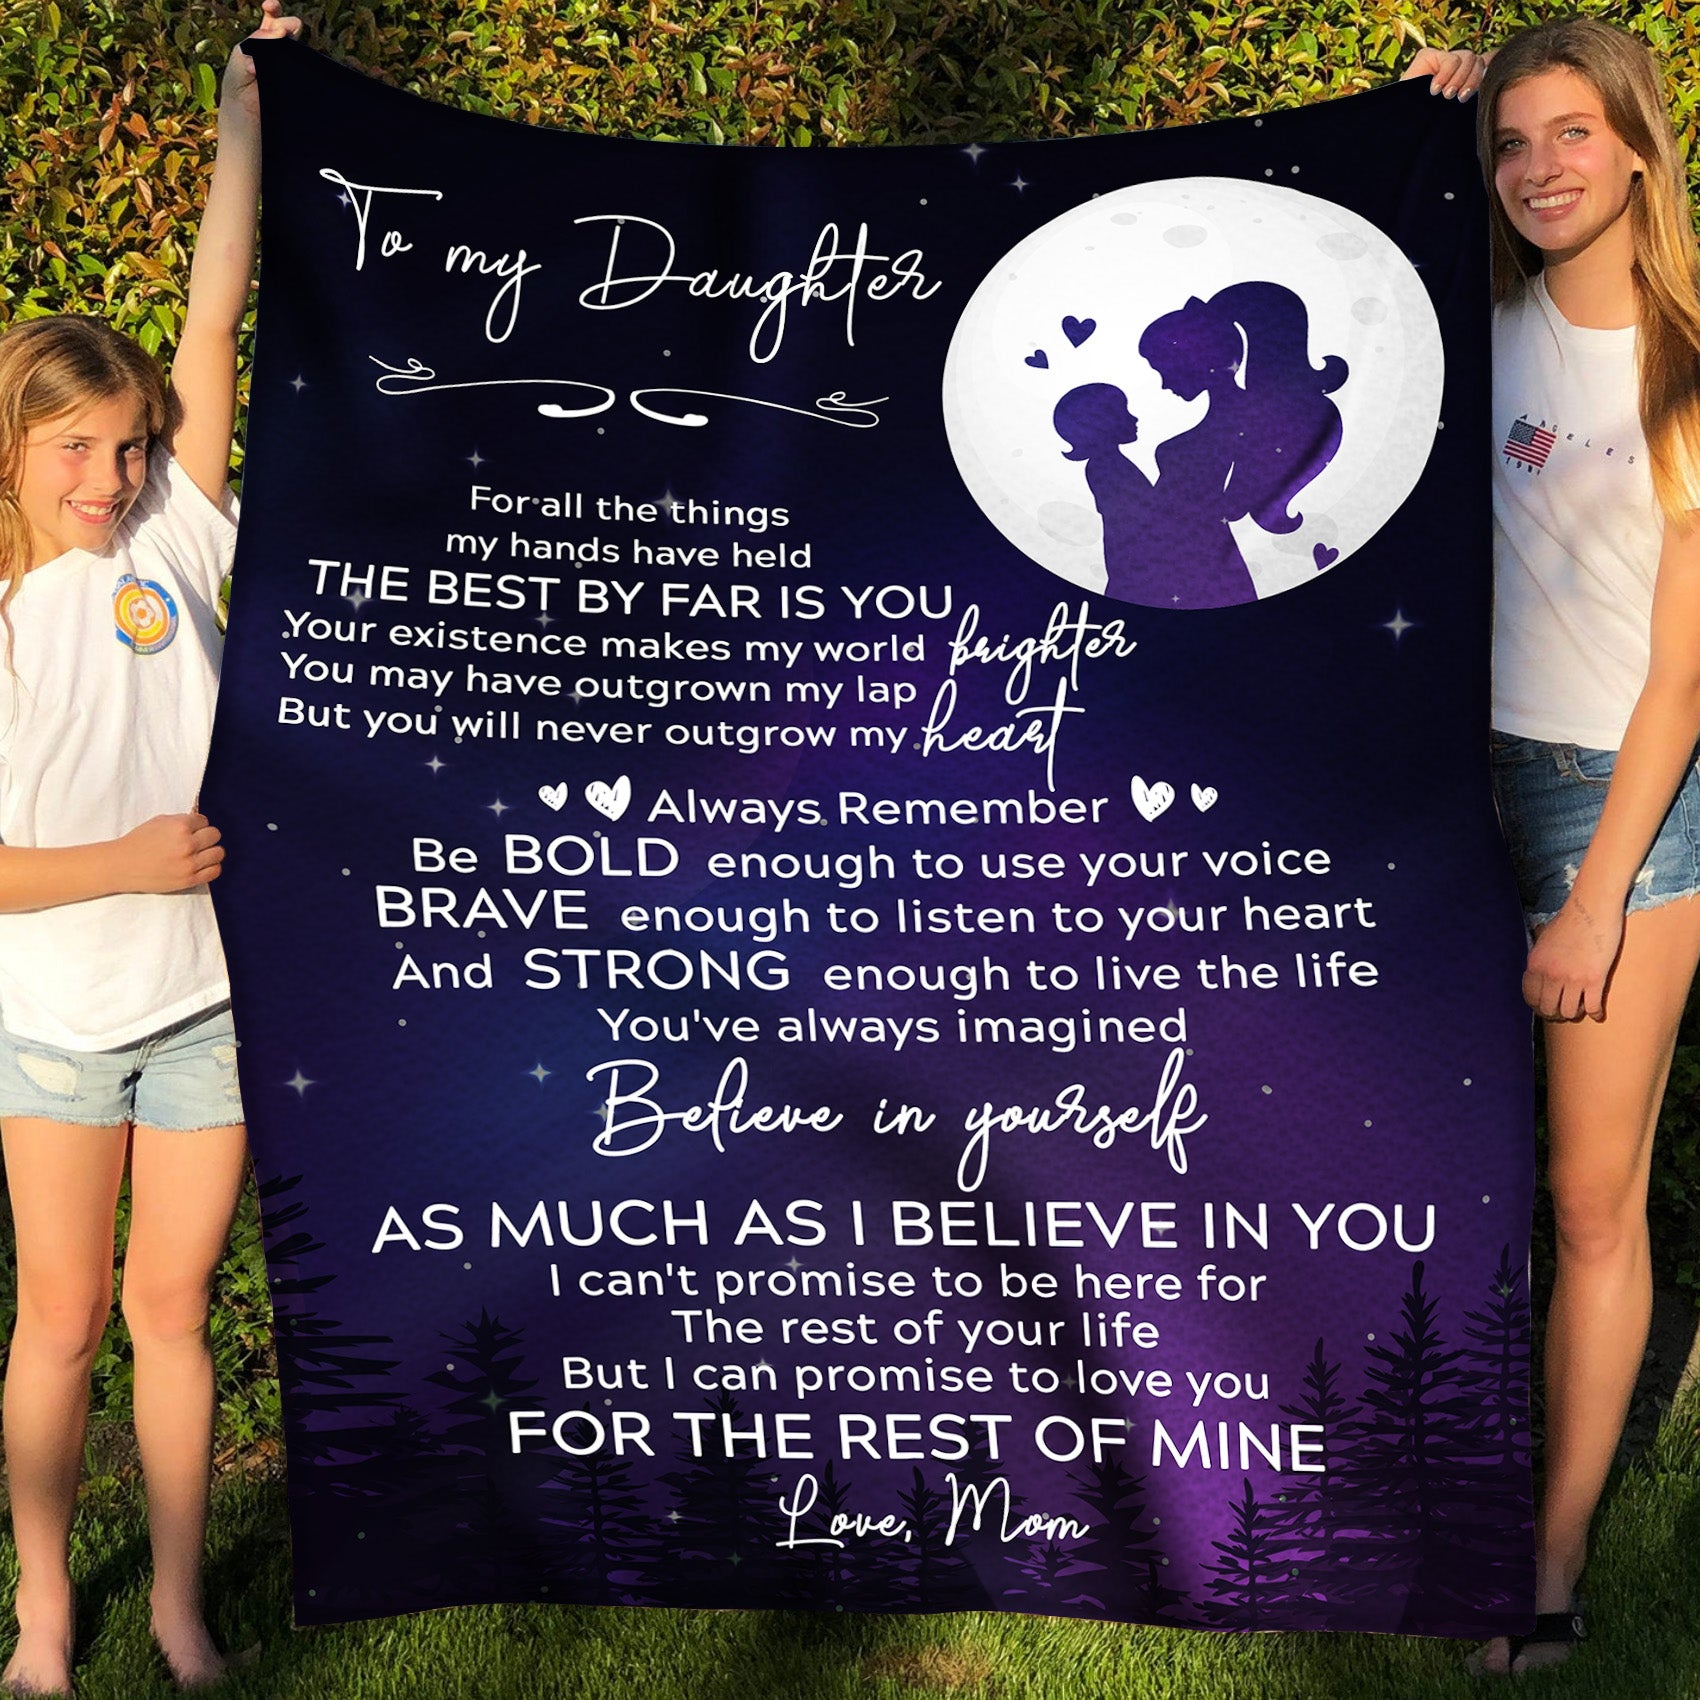 To my daughter fleece blanket - The best by far is you - Gift for daughter from mother - Birthday gifts, blanket with quotes - 135